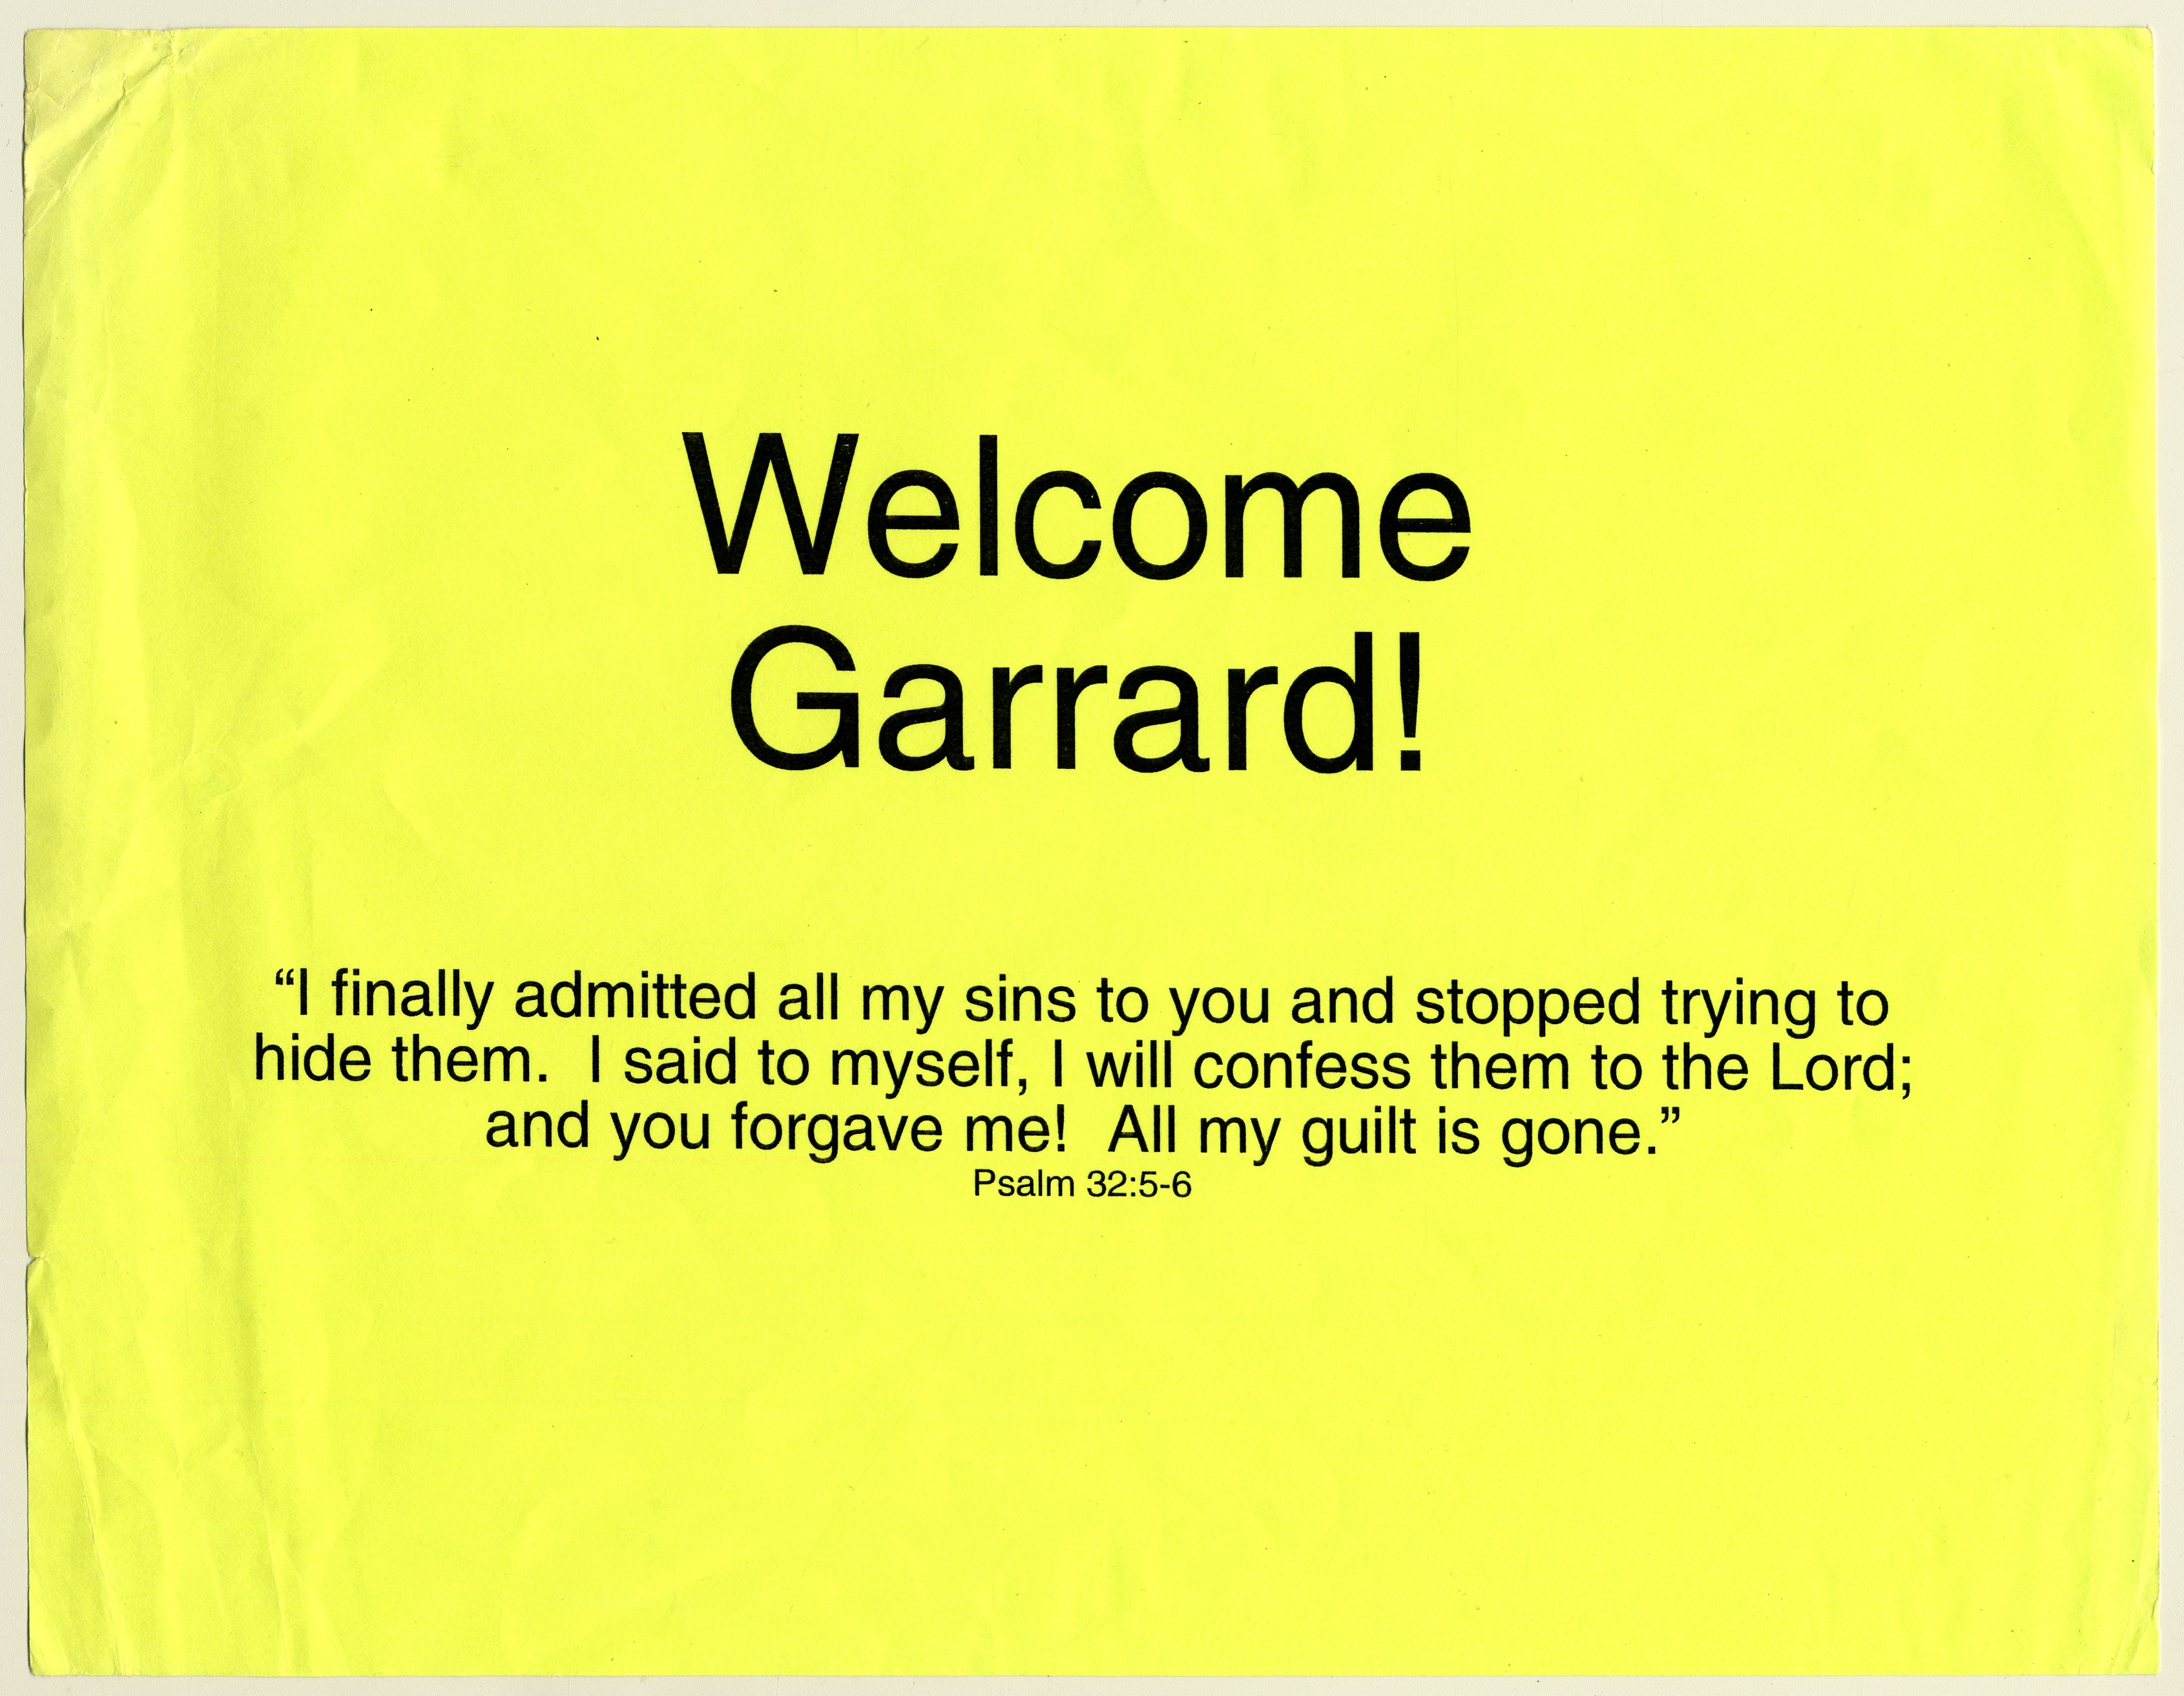 "Workbook on yellow paper. In large text ""Welcome Garrard!"" In smaller text, ""'I finally admitted all my sins to you and stopped trying to hide them. I said to myself, I will confess them to the Lord; and you forgave me! All my guilt is gone.' Psalm 32:5-6"